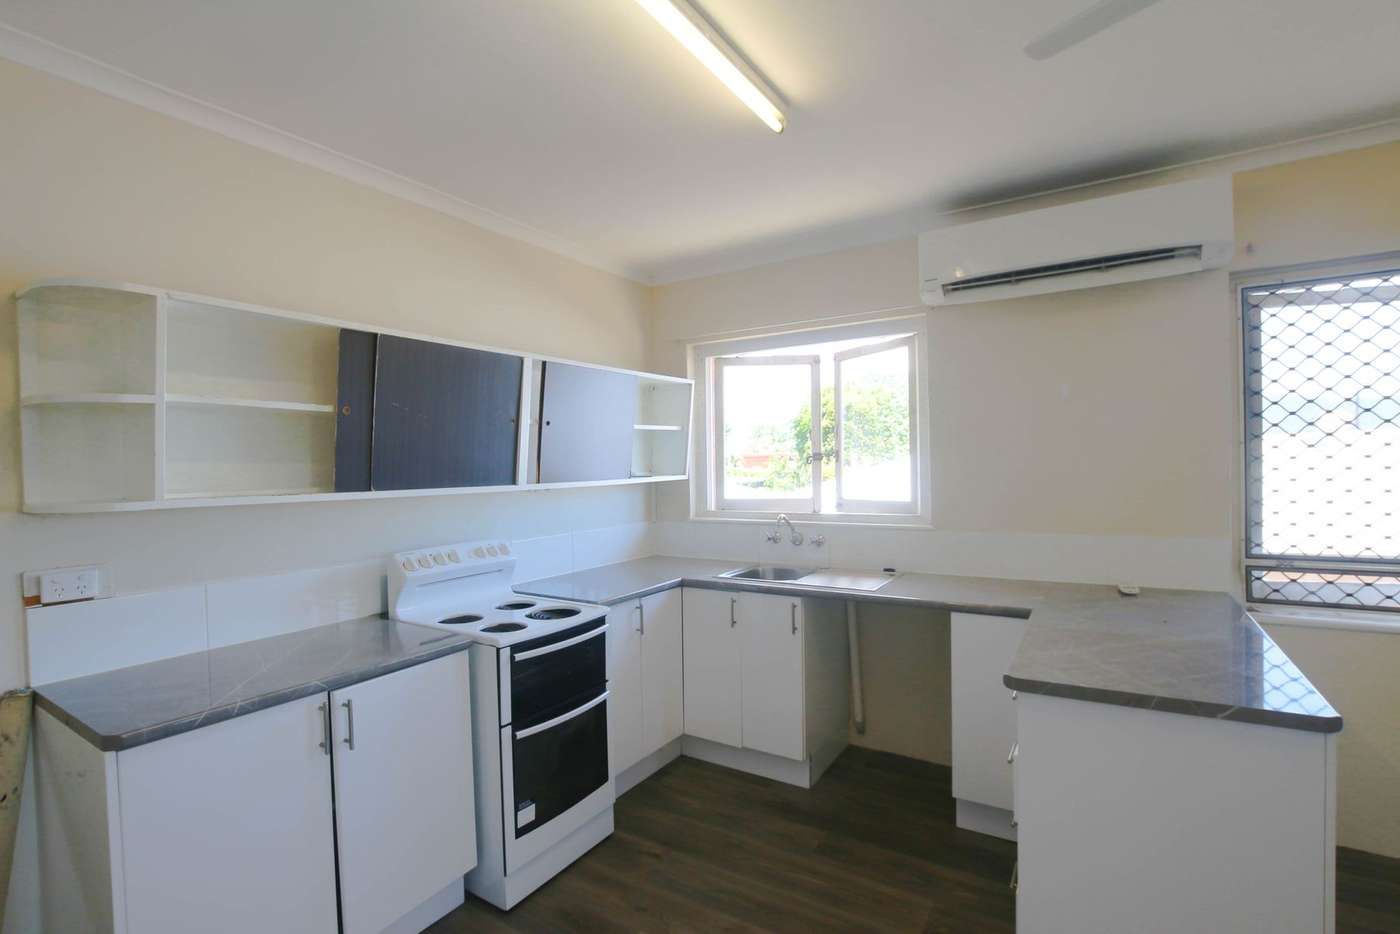 Sixth view of Homely apartment listing, 4/227 Aumuller Street, Westcourt QLD 4870